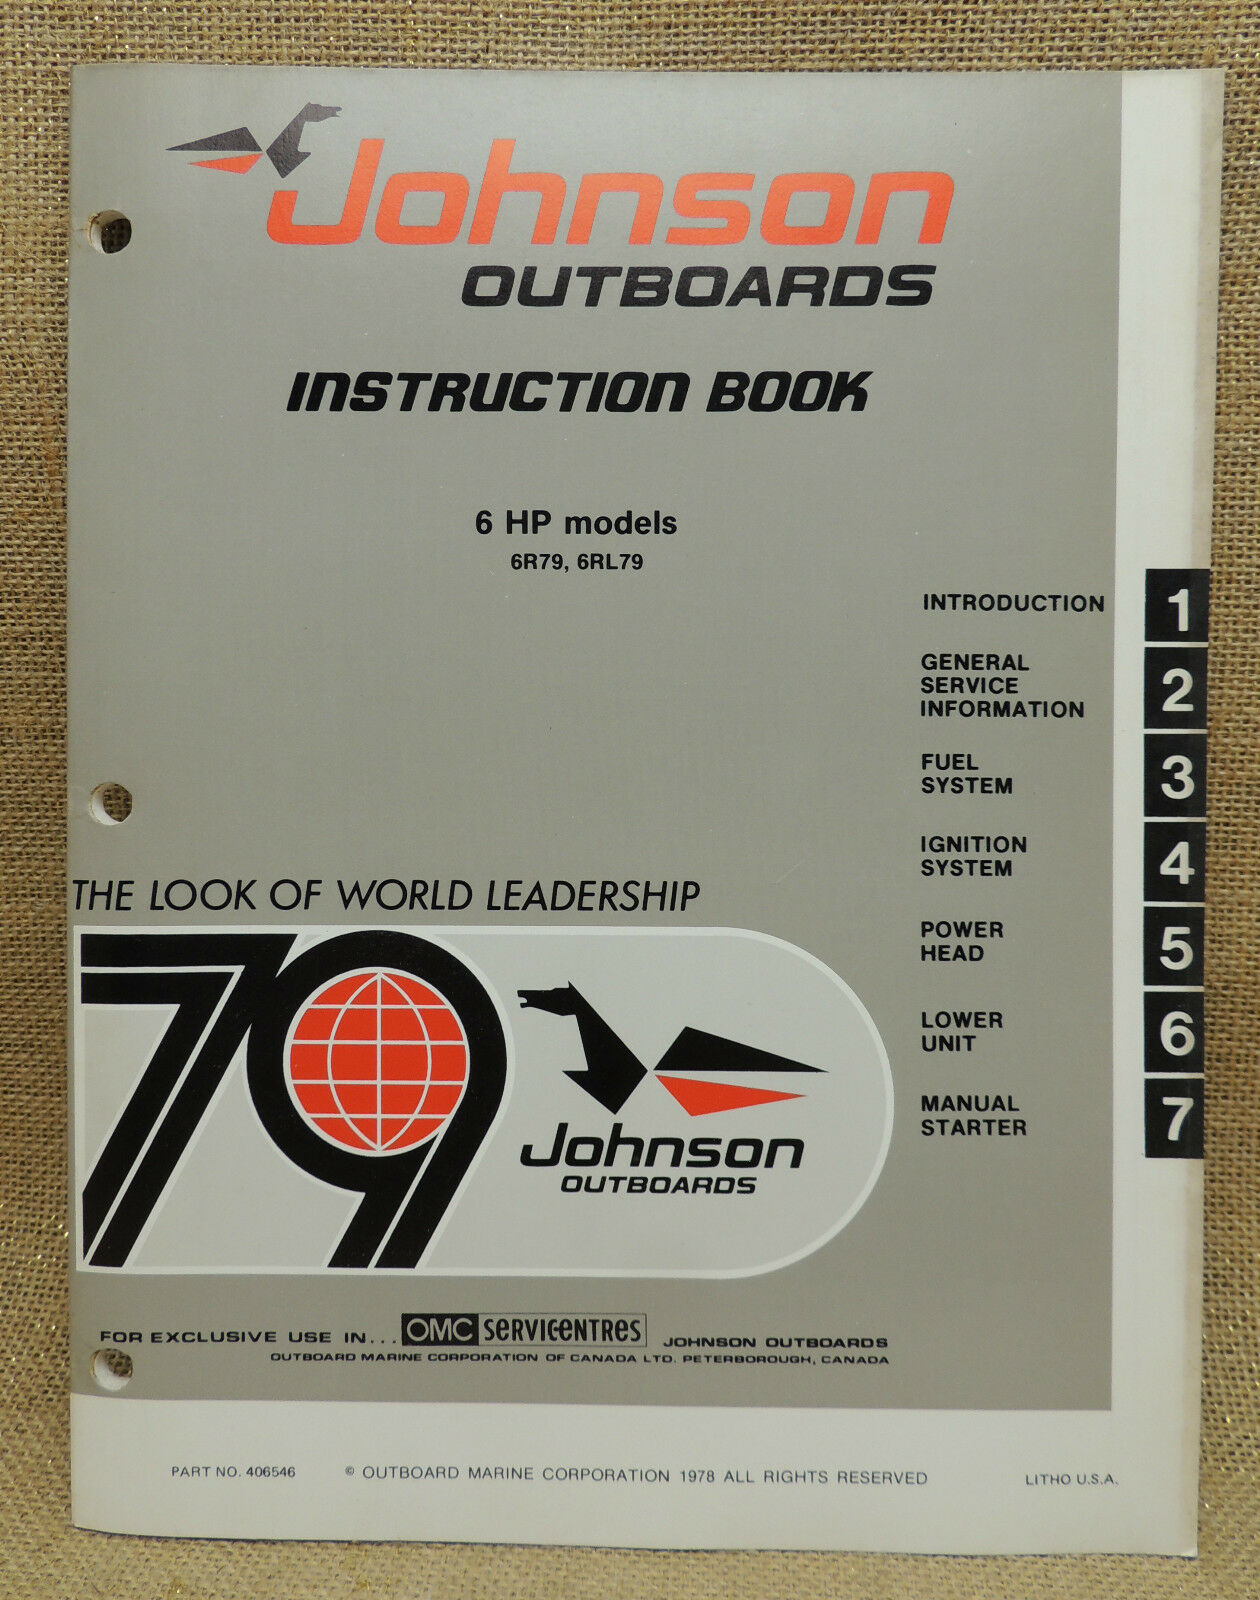 Johnson Seahorse Outboard Service Repair Manual 1979 6 HP 6R79 6RL79 1 of  5Only 1 available Johnson Seahorse Outboard Service Repair Manual ...